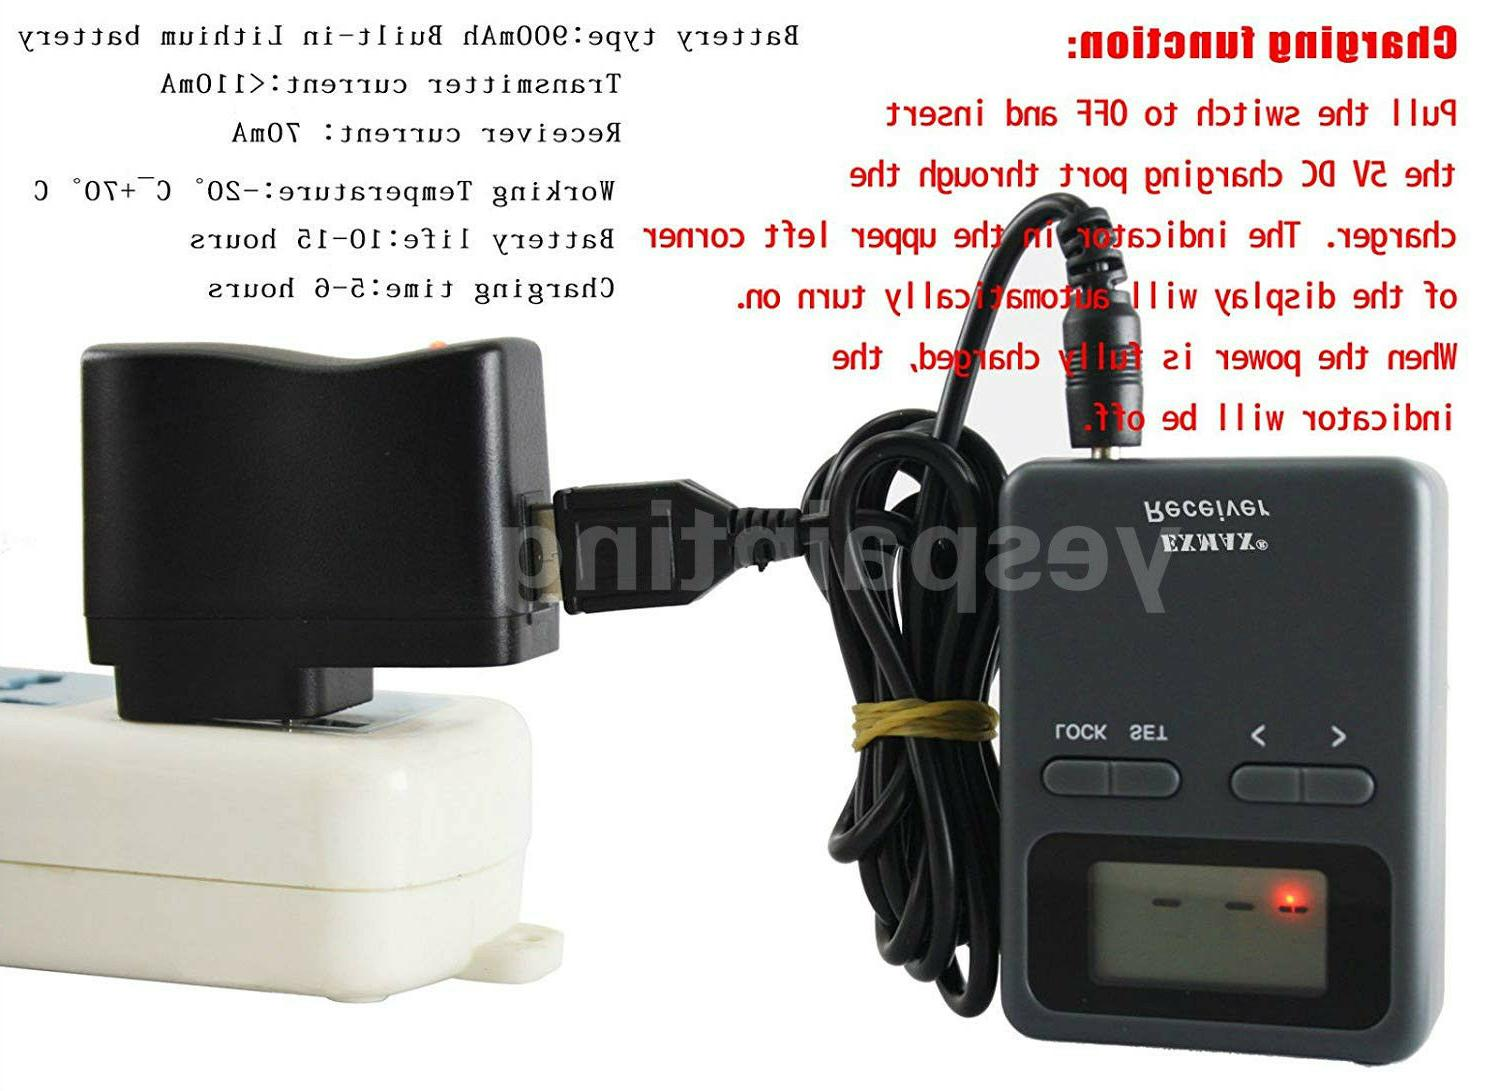 EXMAX Tour Guide System Microphone 1T8R For